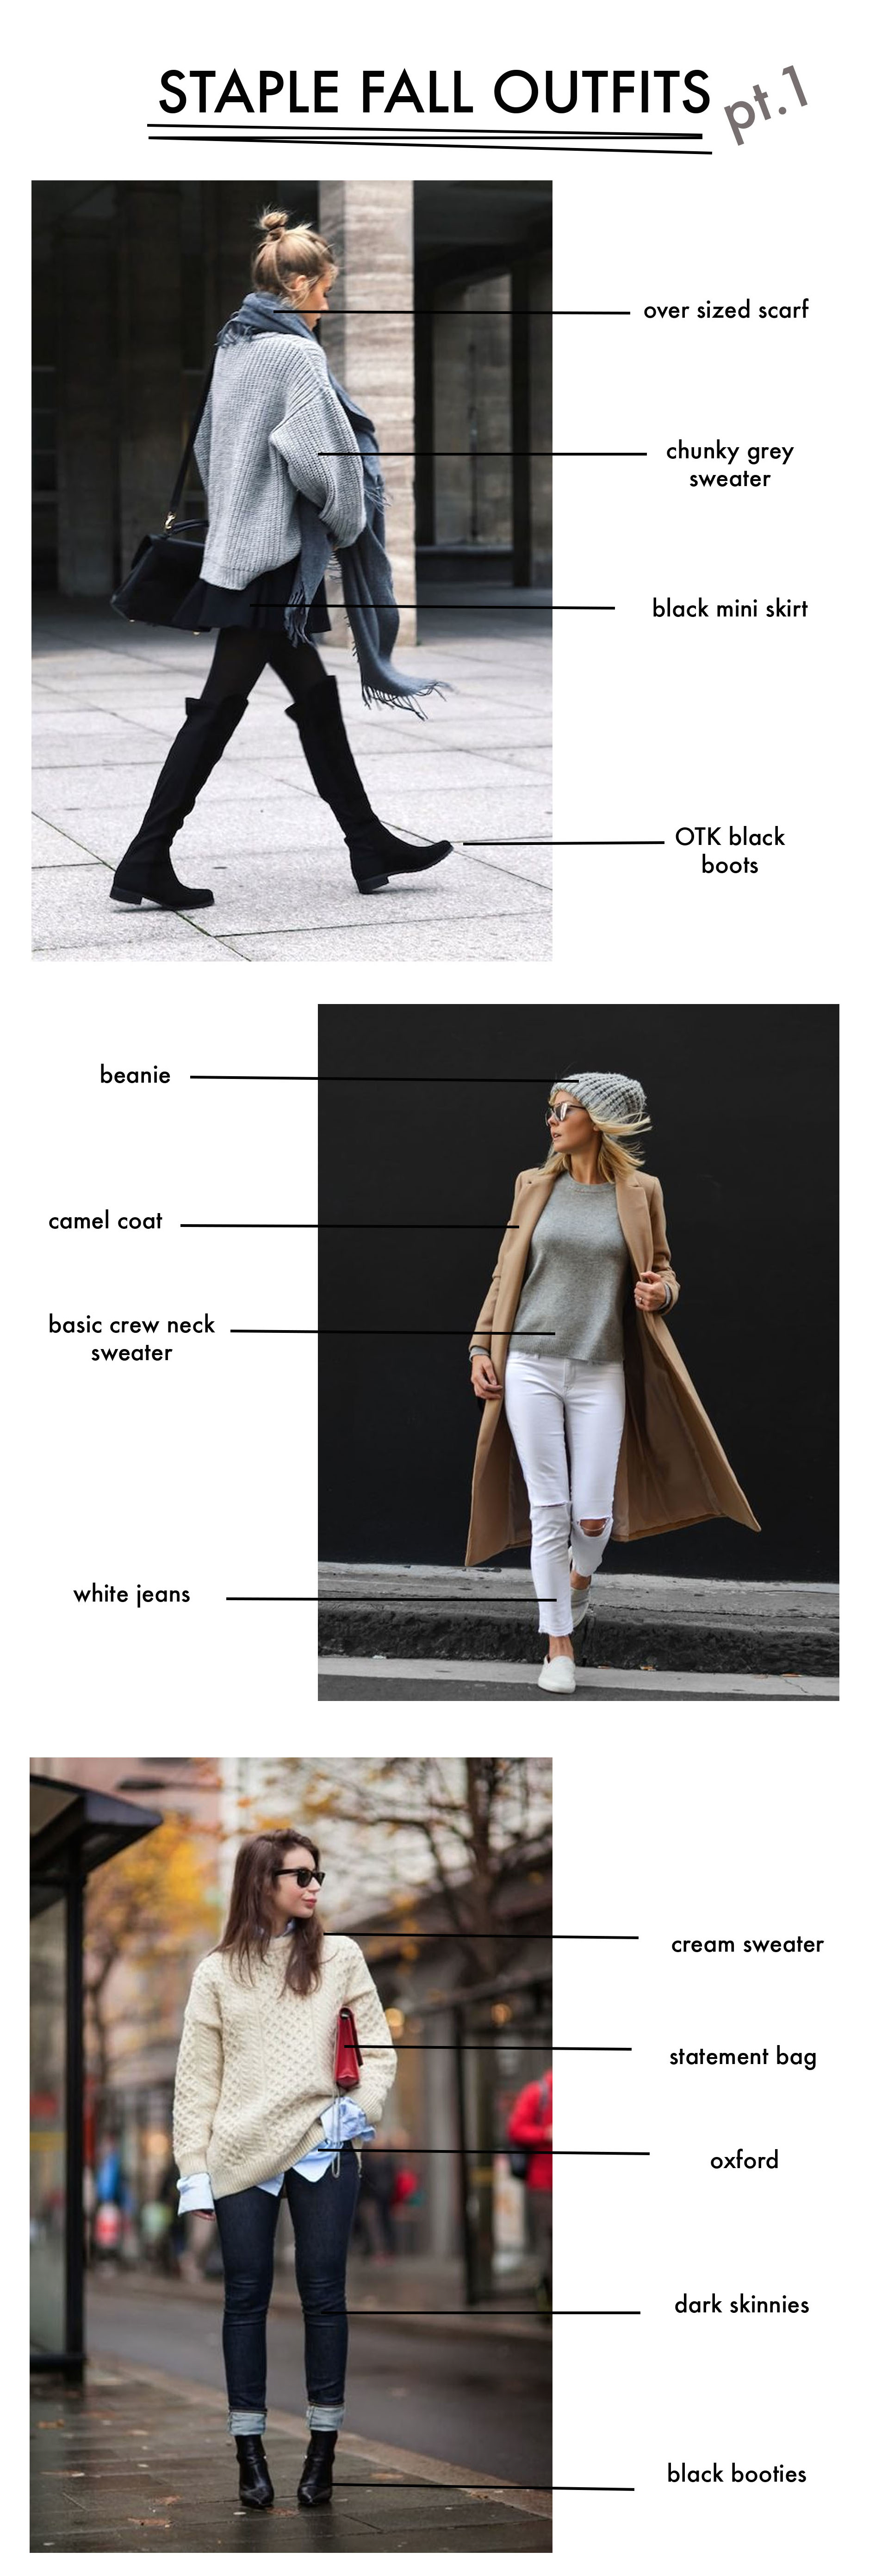 Basic Fall OUtfits pt.1